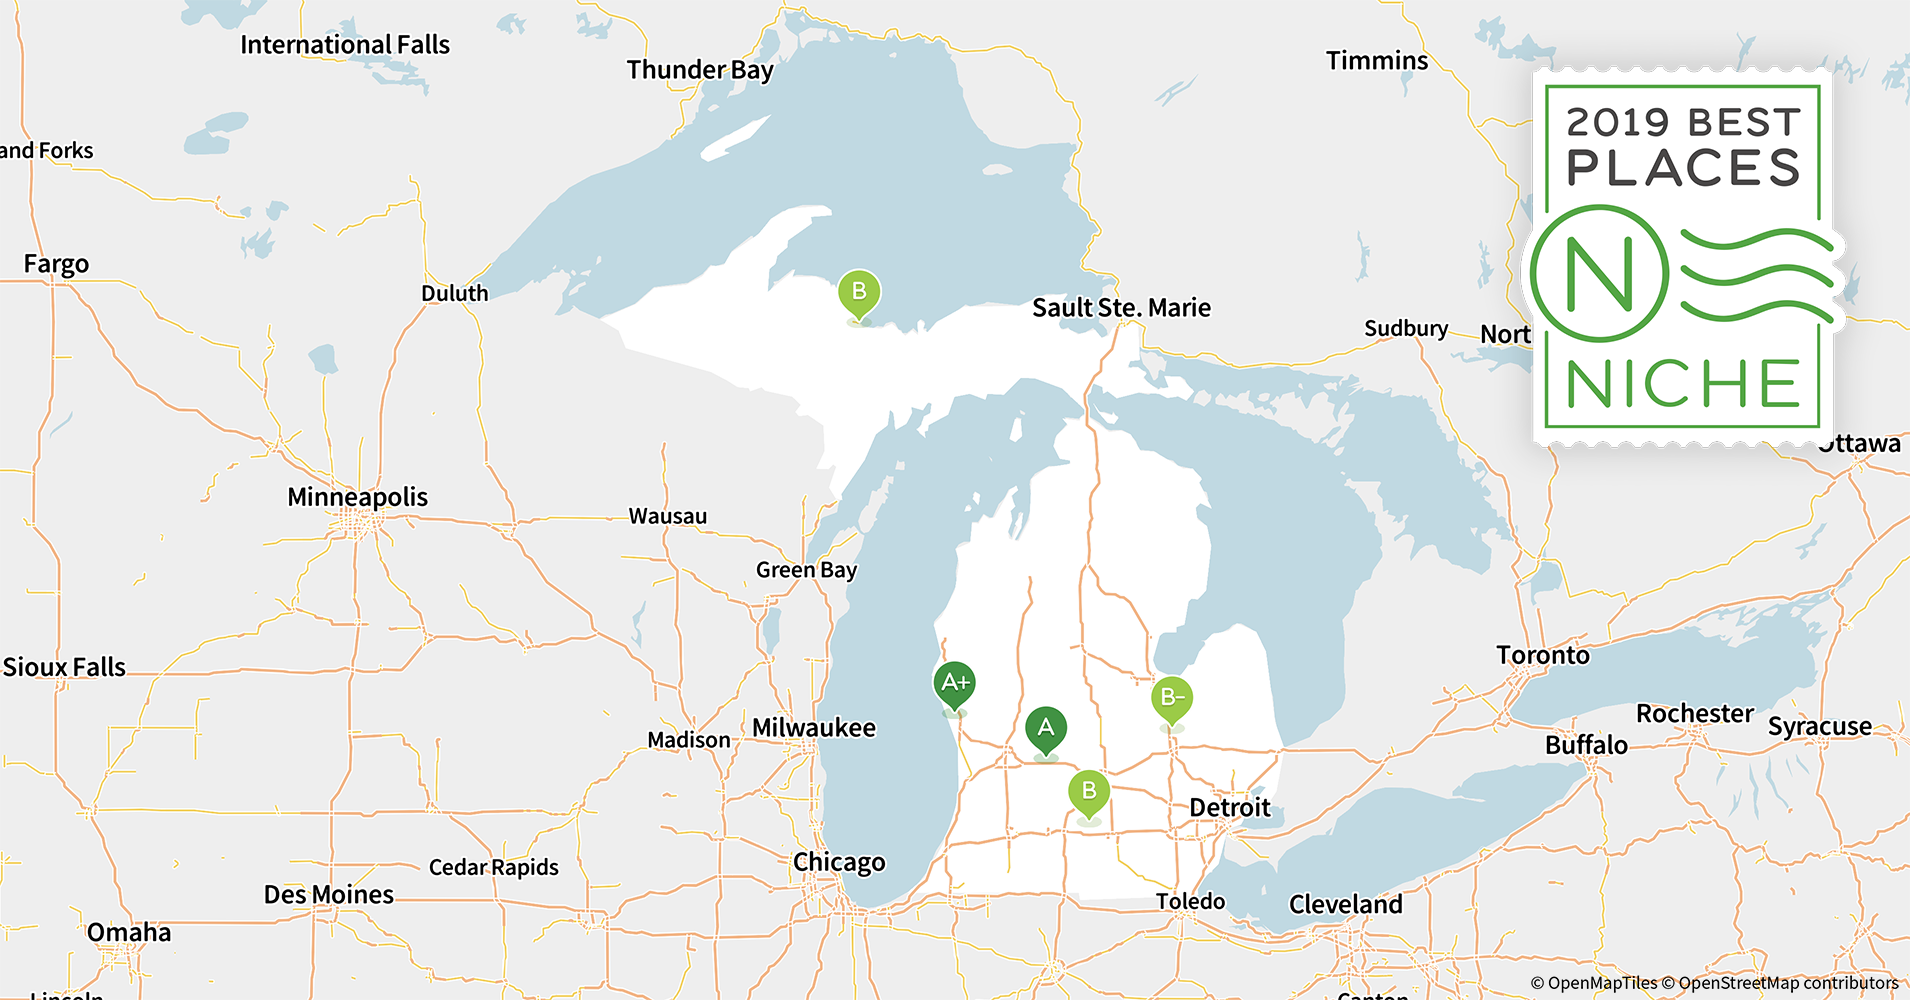 2019 Best Places to Live in Michigan - Niche Michigan Map Of Cities on map of wisconsin and minnesota, map of michigan states, map of cass city michigan, map of clarkston michigan, map of lansing michigan, map of michigan counties, map of central michigan, map of indiana and michigan, map of michigan highways, upper michigan map cities, map of ohio, map of south east michigan, map of michigan showing canton, map of michigan school districts, map of detroit, map of u p michigan, map of lake michigan, map of westland michigan, map of hudsonville michigan, map of jackson michigan,